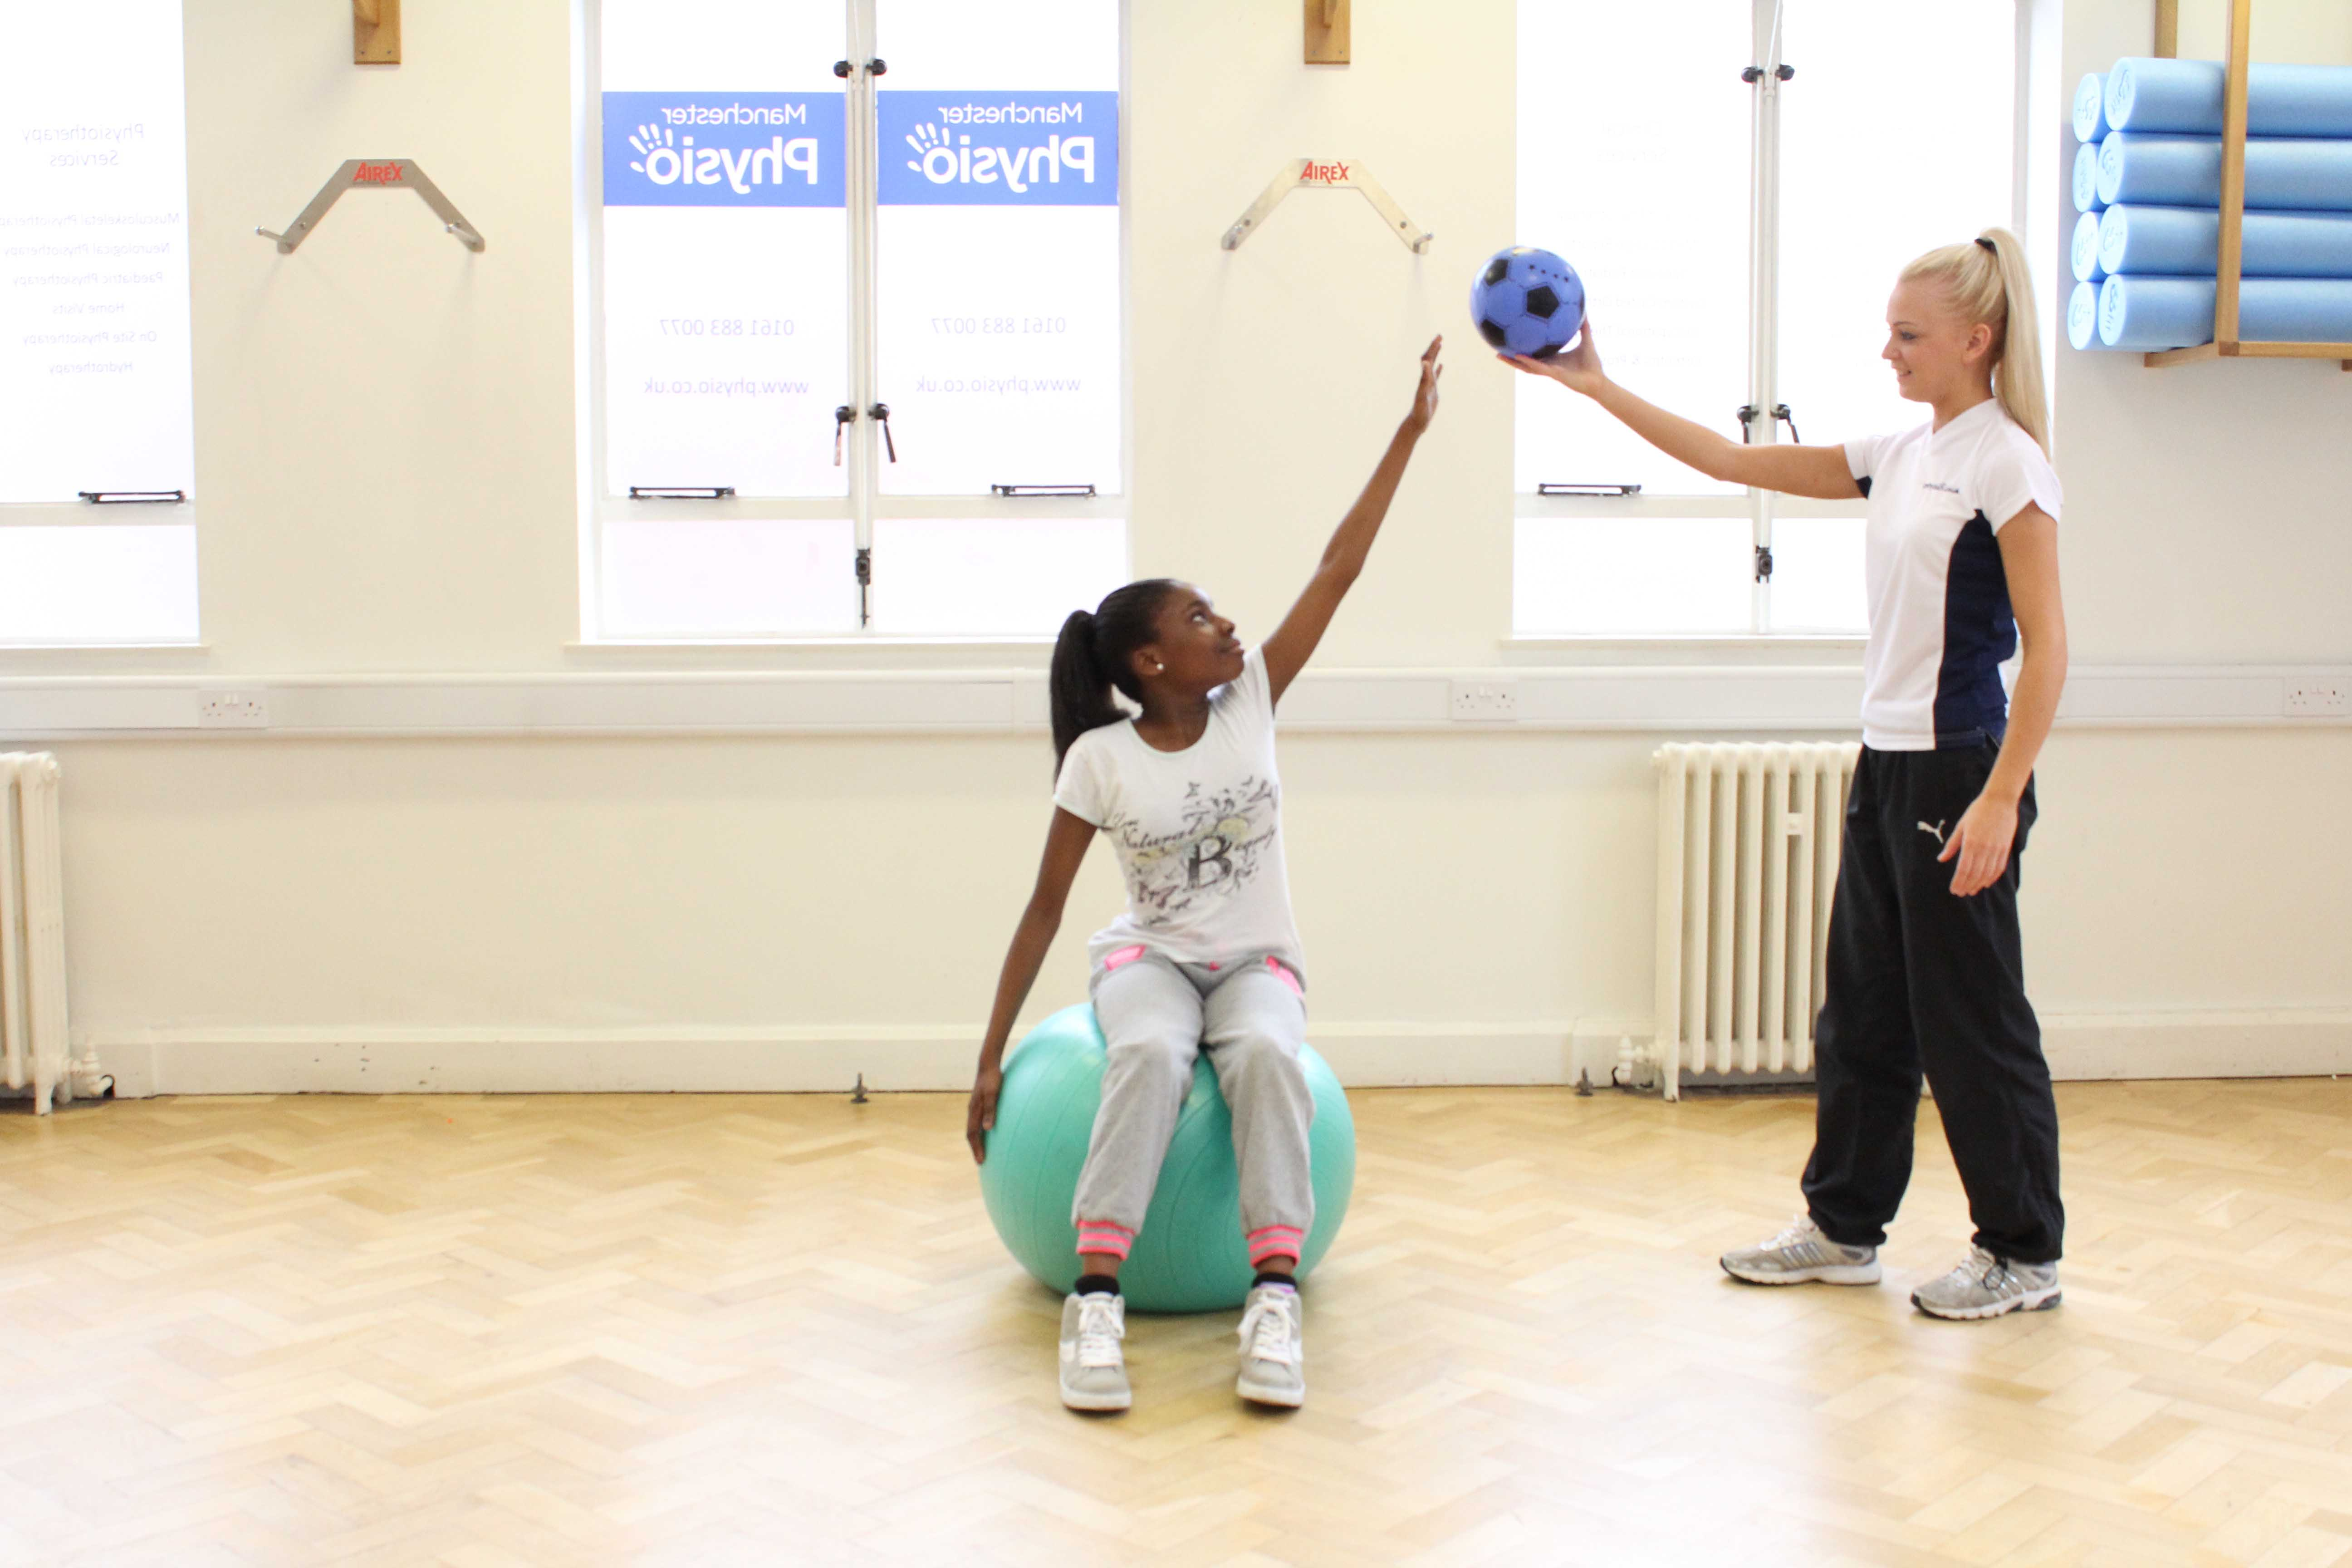 Rehabilitation through play, incorporating dynamic strength and stretching exercises.